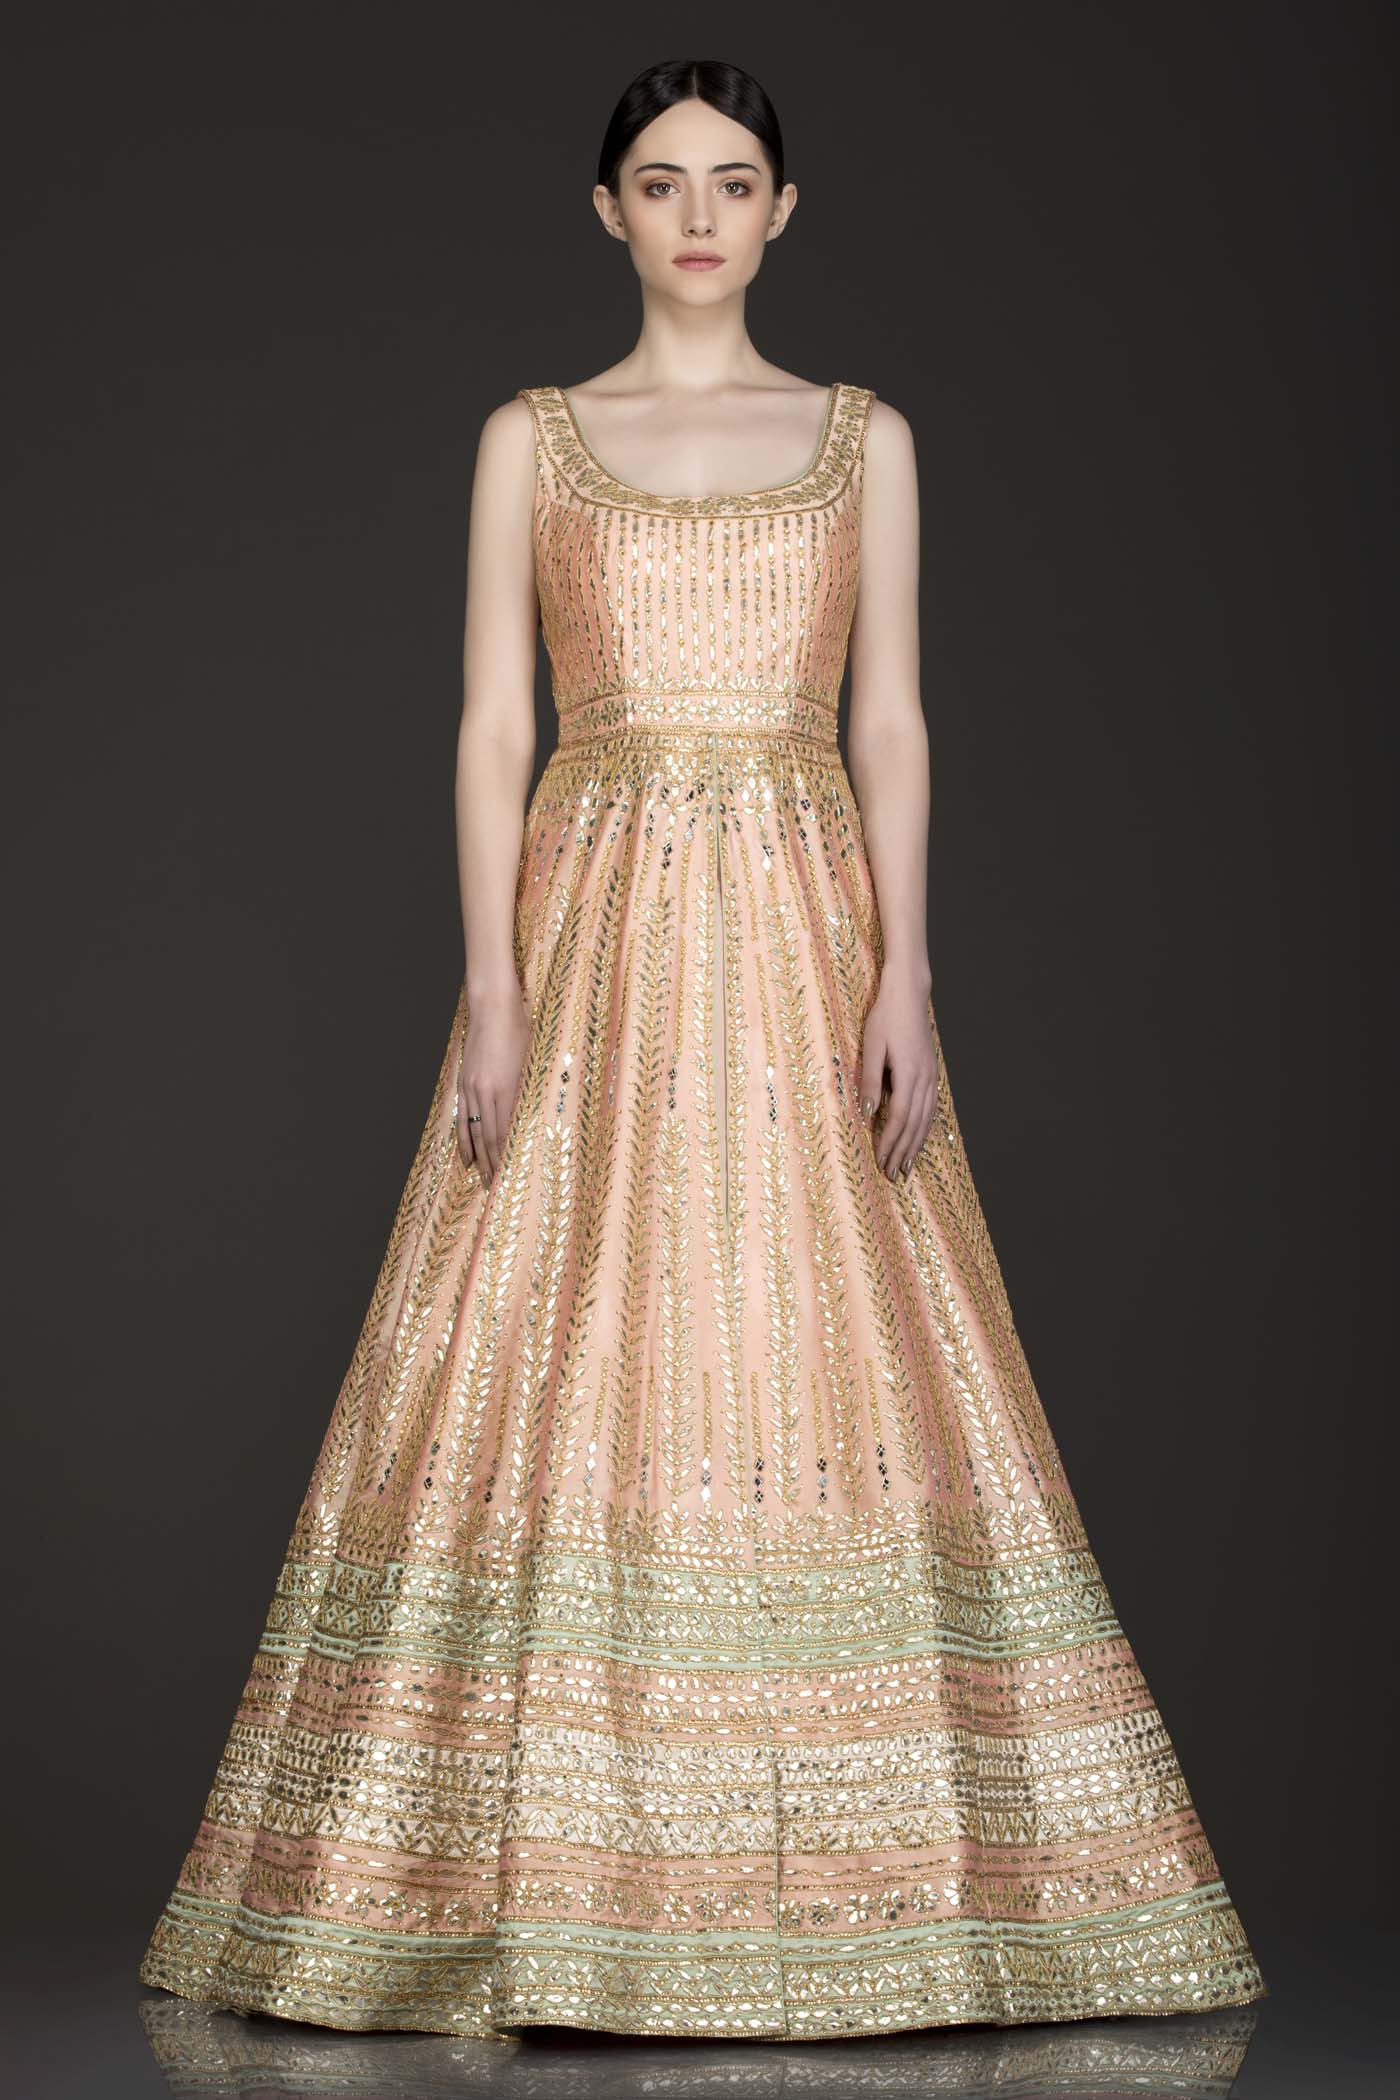 Peach Colour Silk Anarkali/Gown With Front Slit And Attached Skirt With Net Dupatta